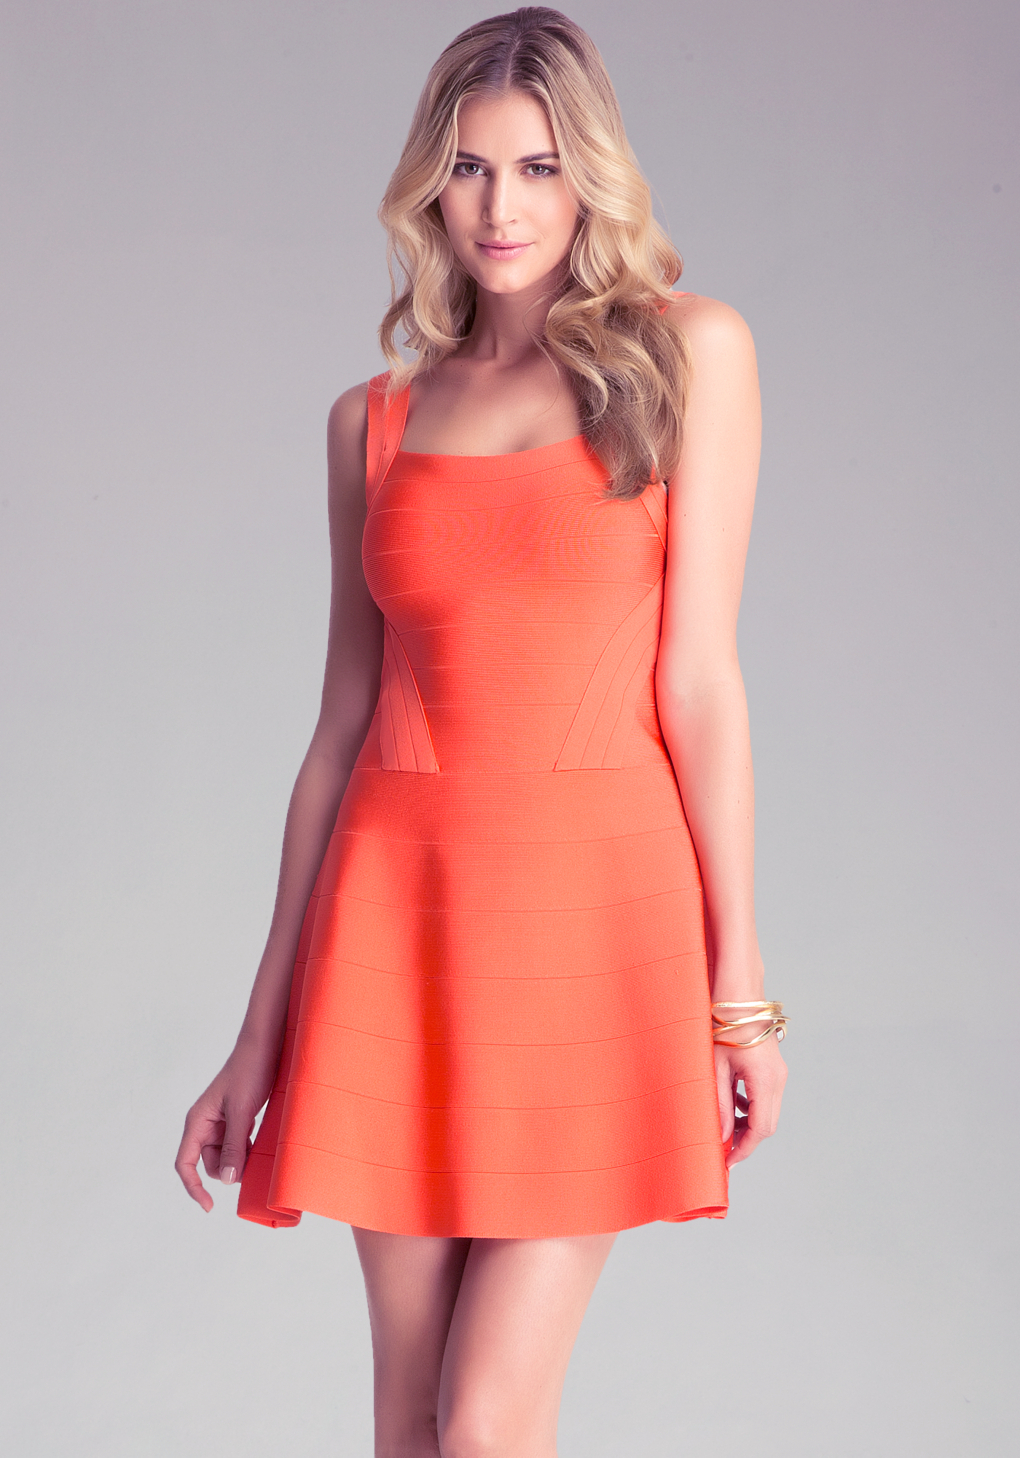 Lyst  Bebe Colorblock Fit N Flare Dress in Red